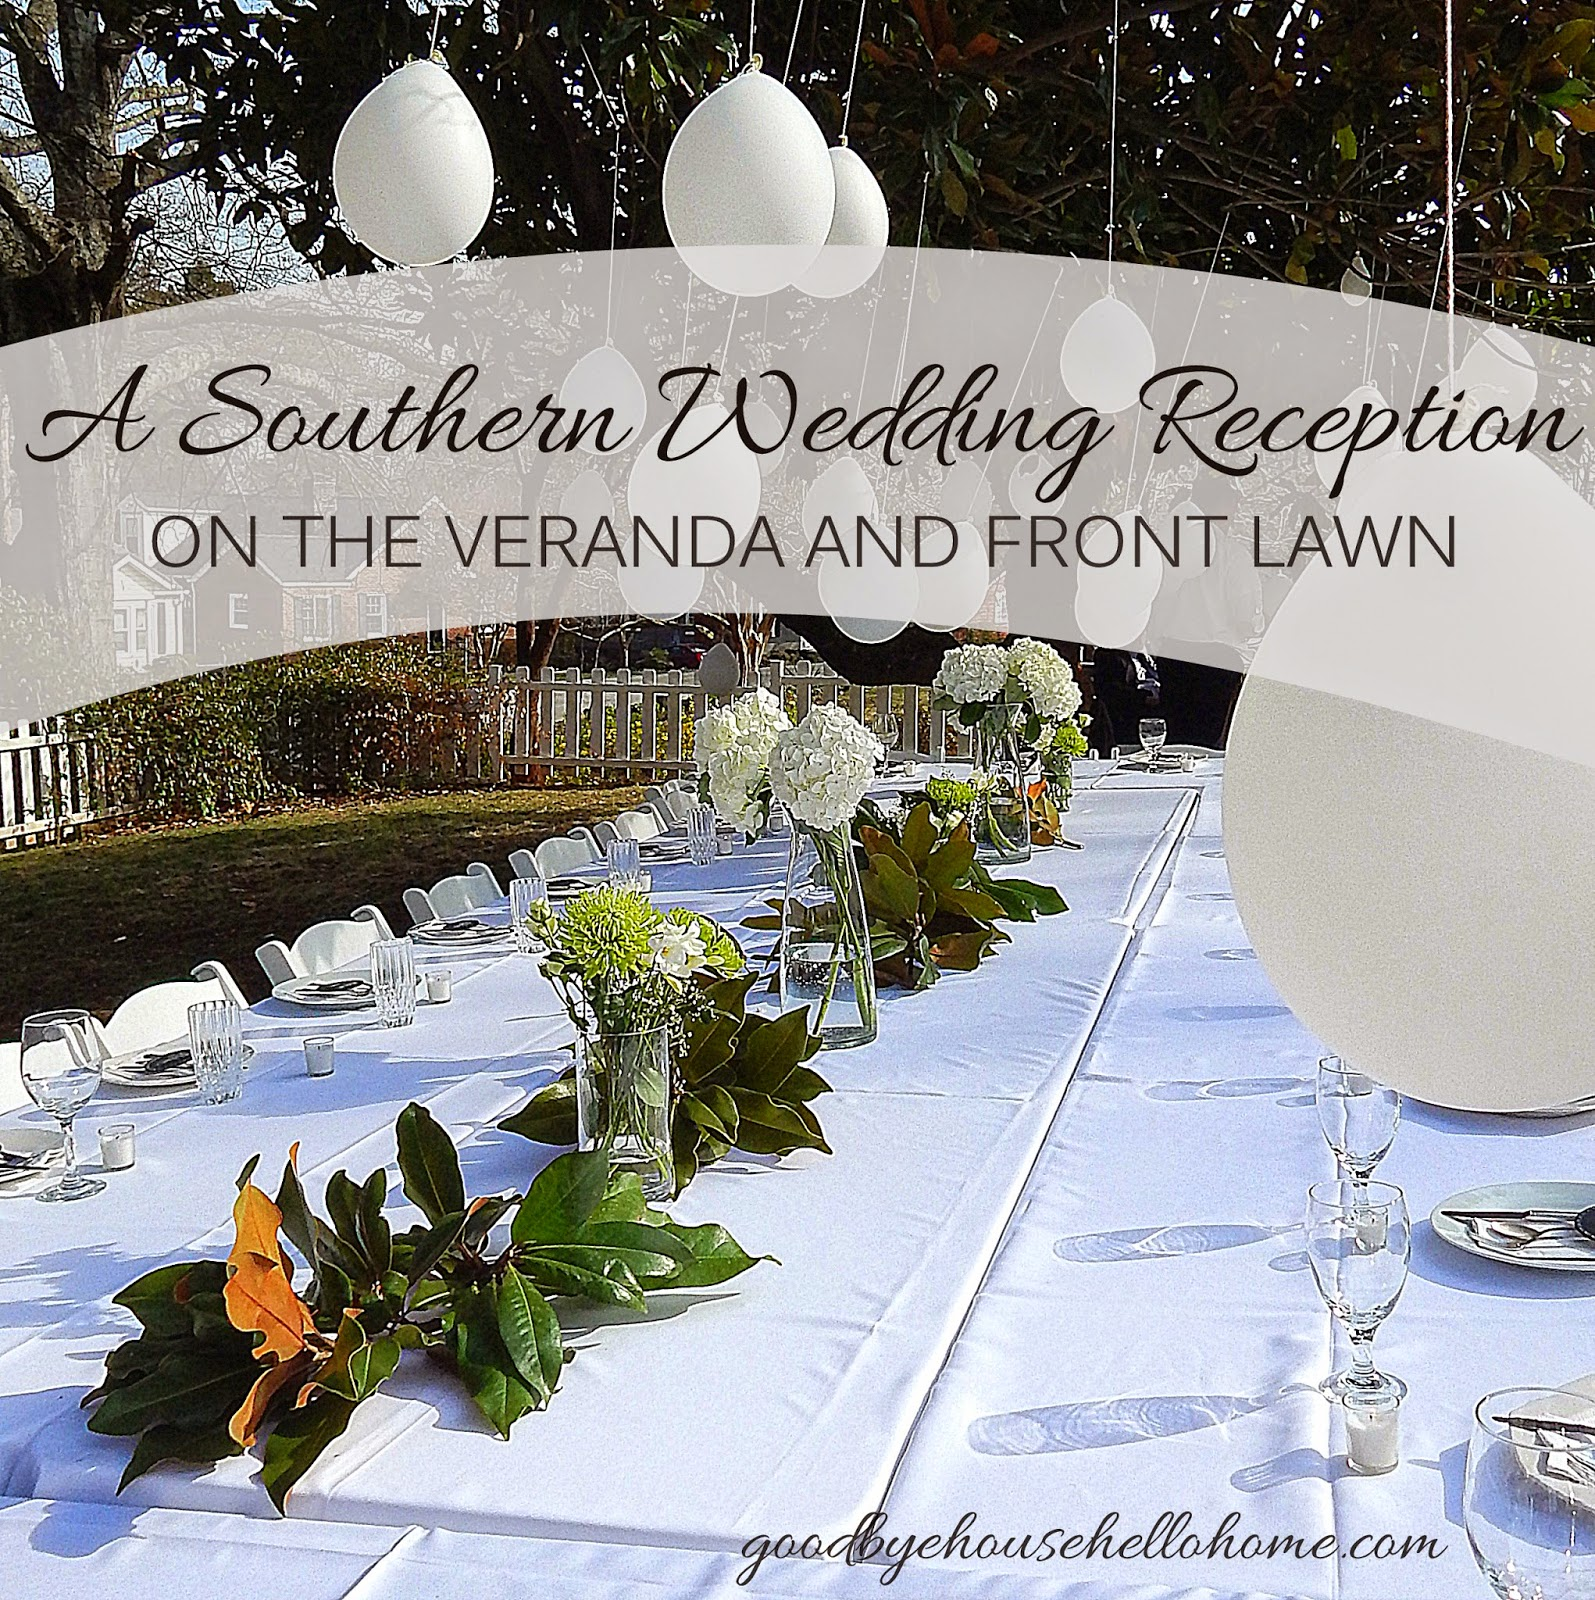 Goodbye House Hello Home Blog  A Southern Wedding Reception on the veranda and front lawn